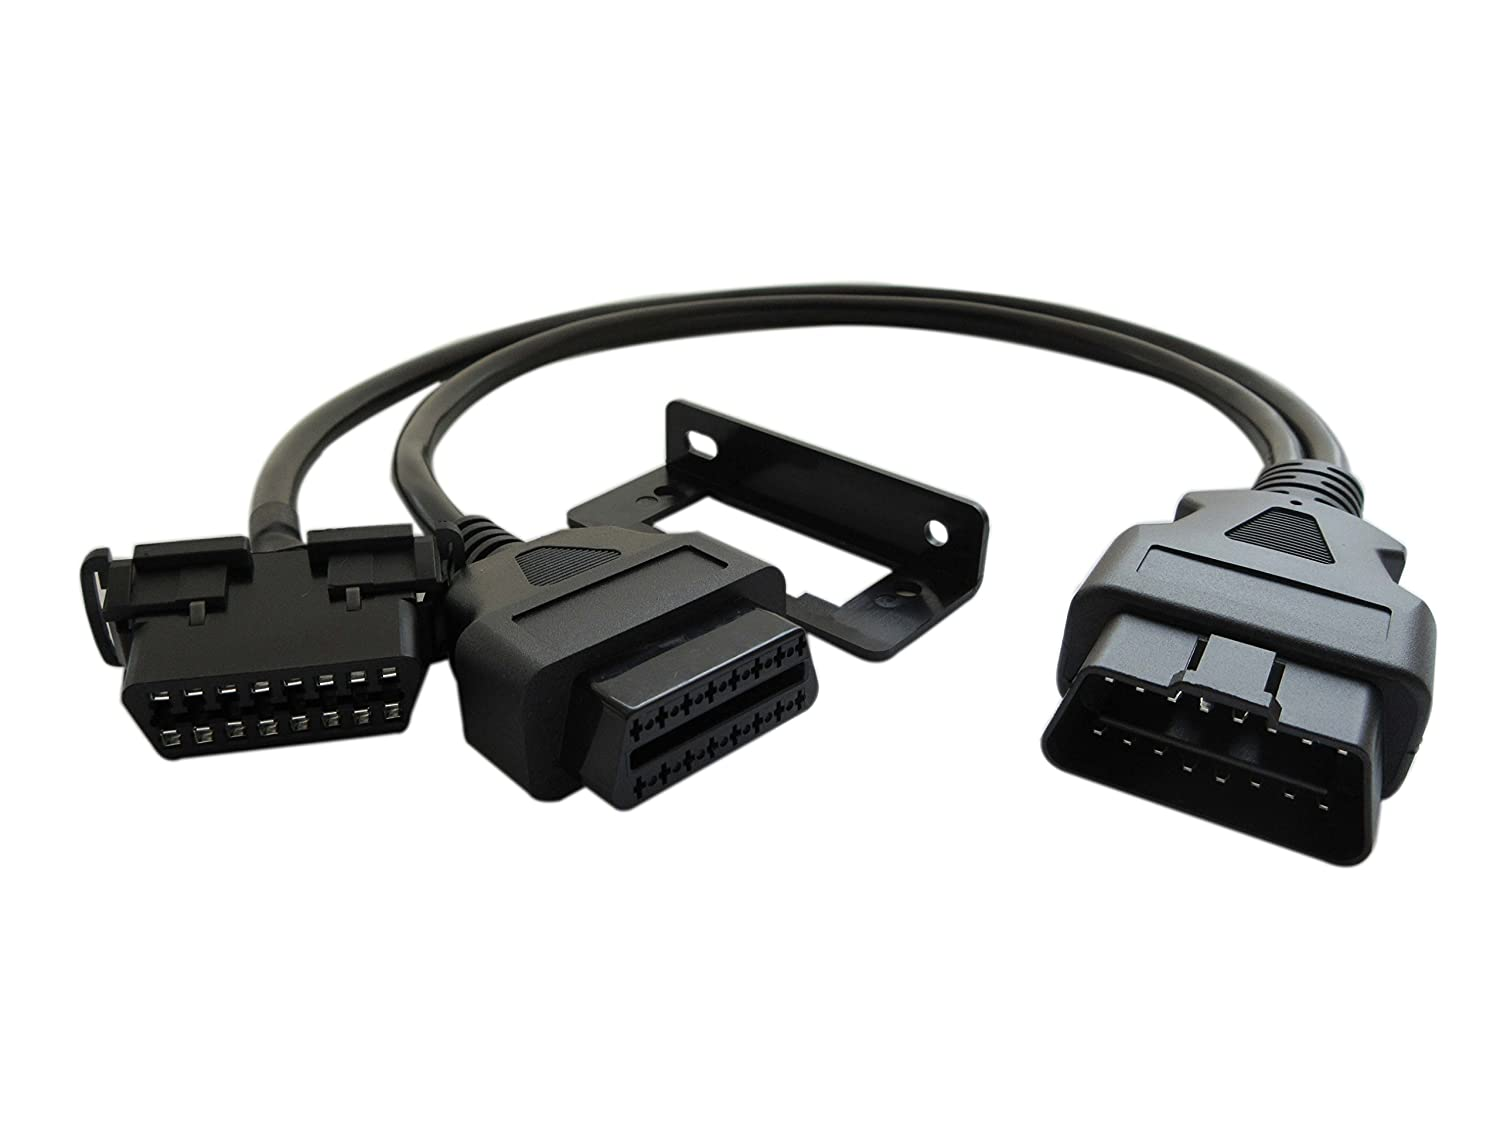 Fotag 16pin Male To Female Obd2 Obdii Y Adapter Toyota Obd Connector Location Diagnostic Splitter Cable With Underdash Bracket For All Car 50cm Automotive